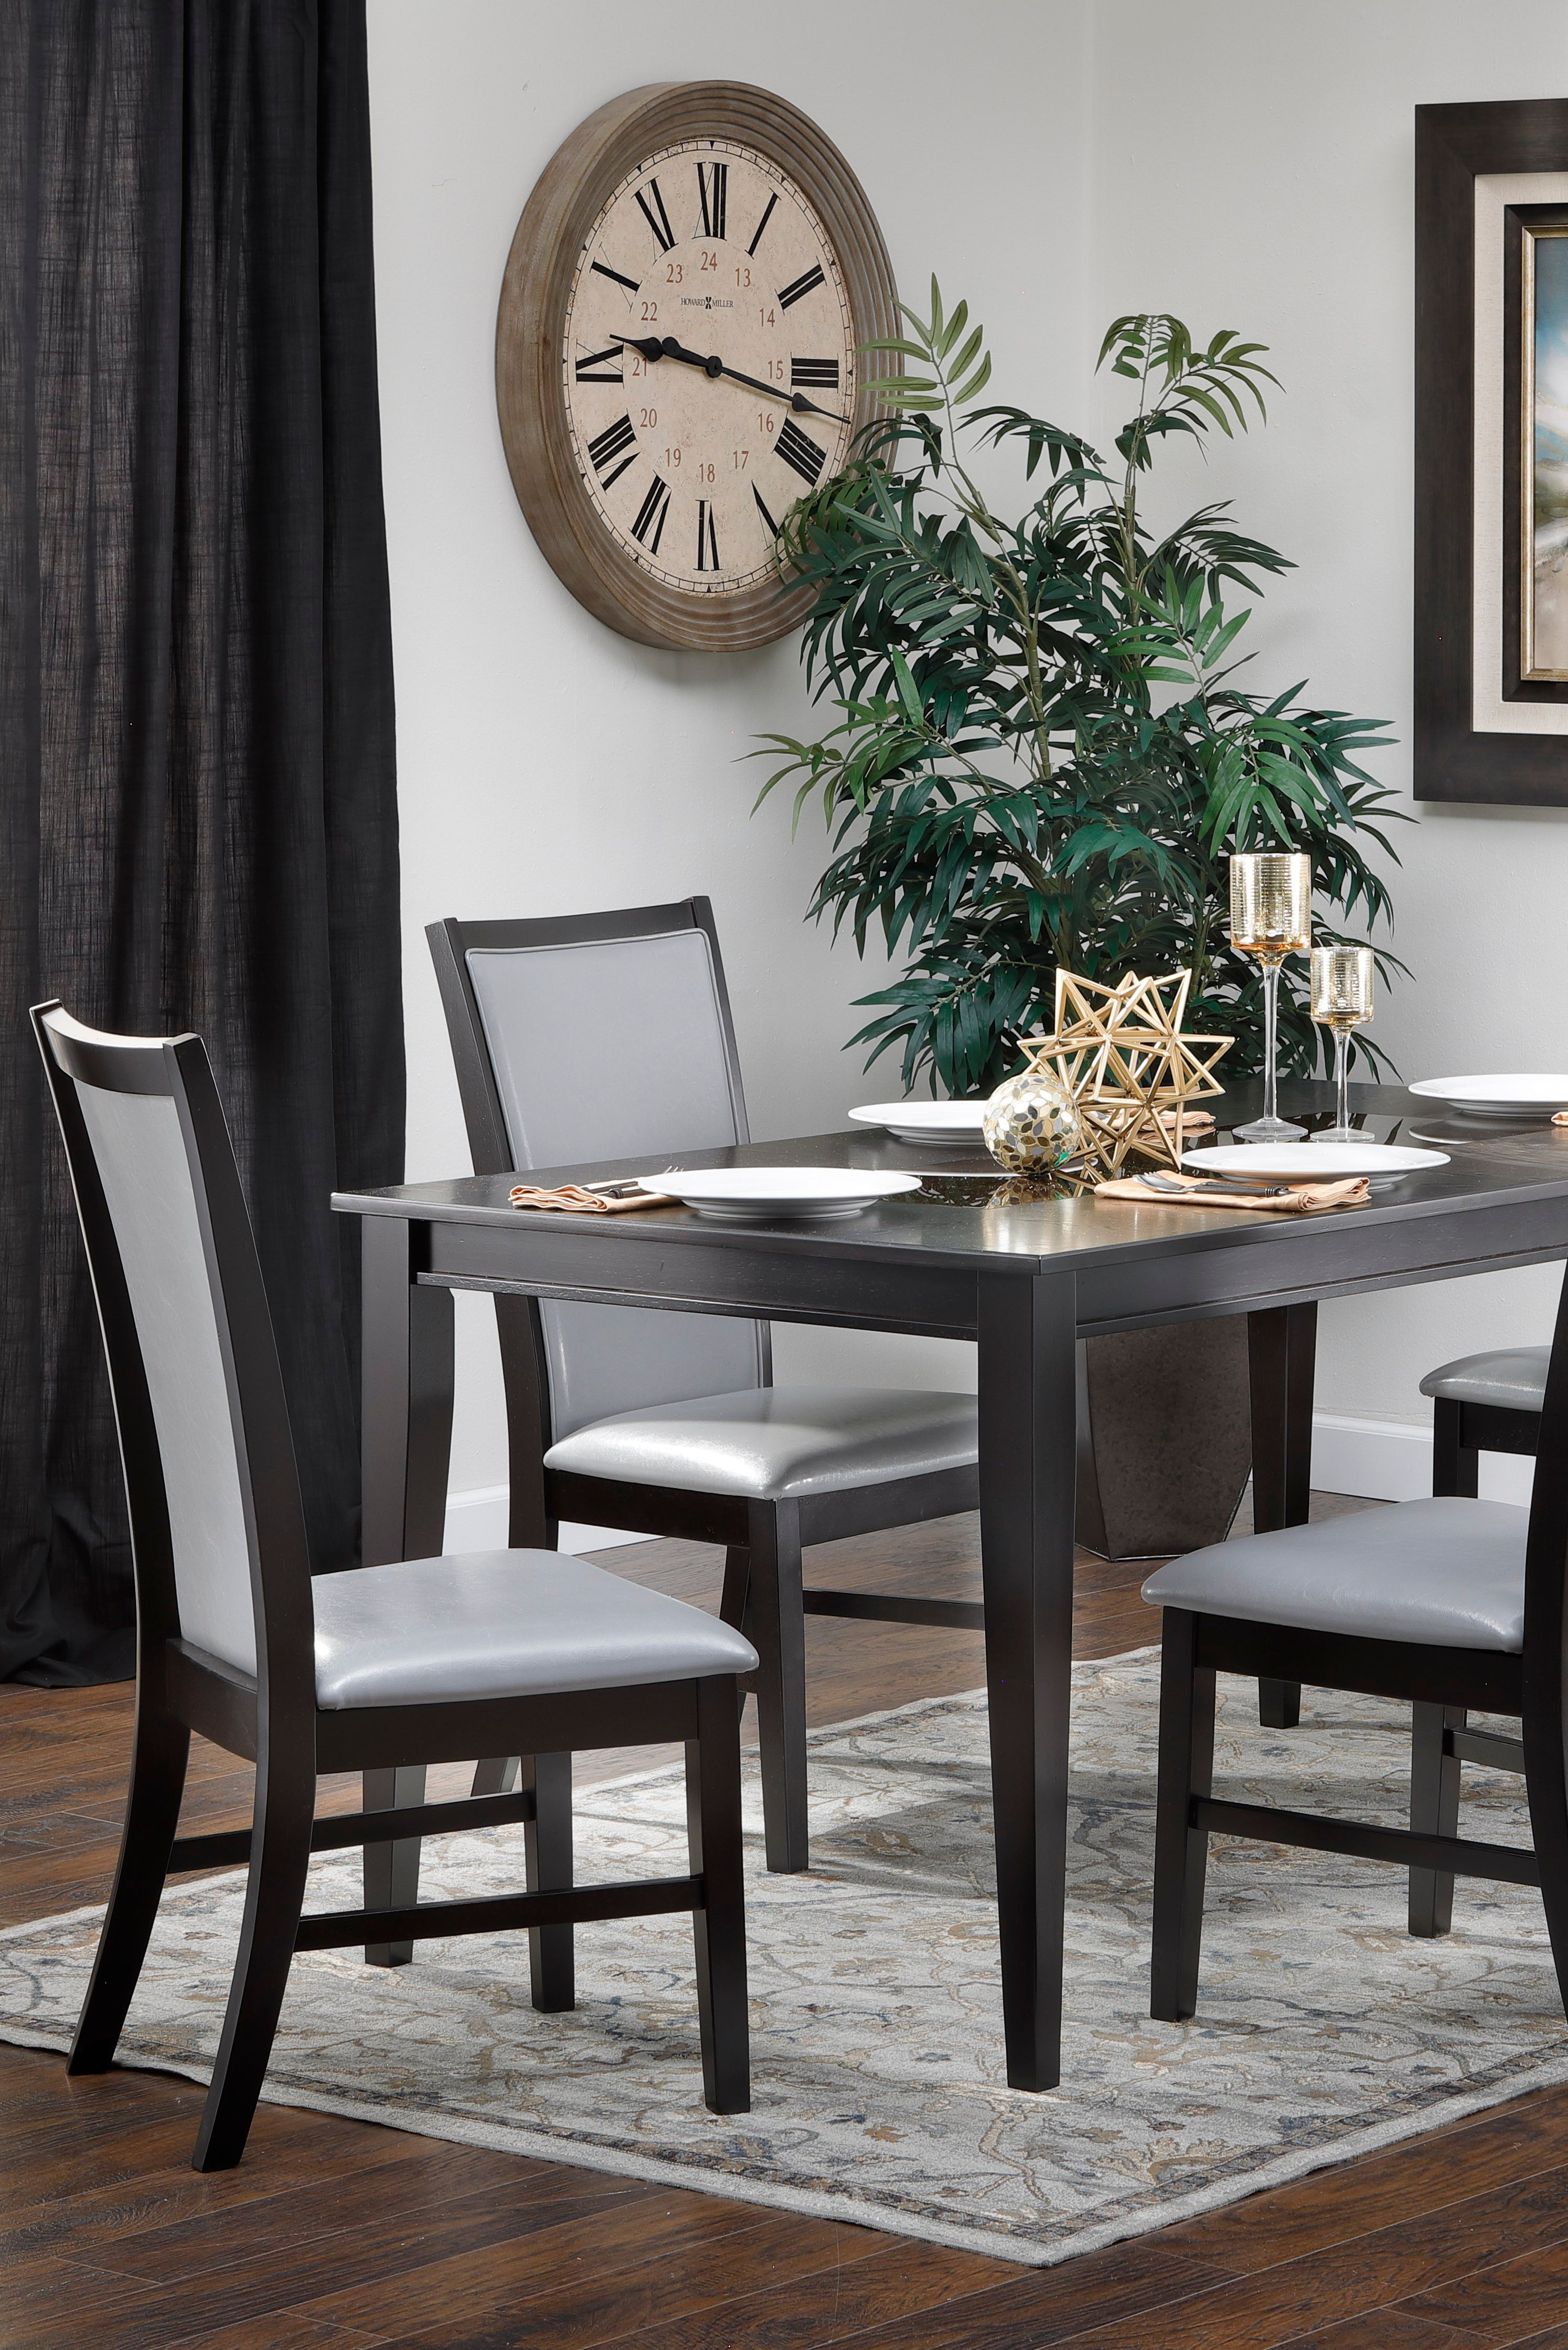 Calypso 5 Pc Dining Room Set Rowe Furniture Dining Rectangle